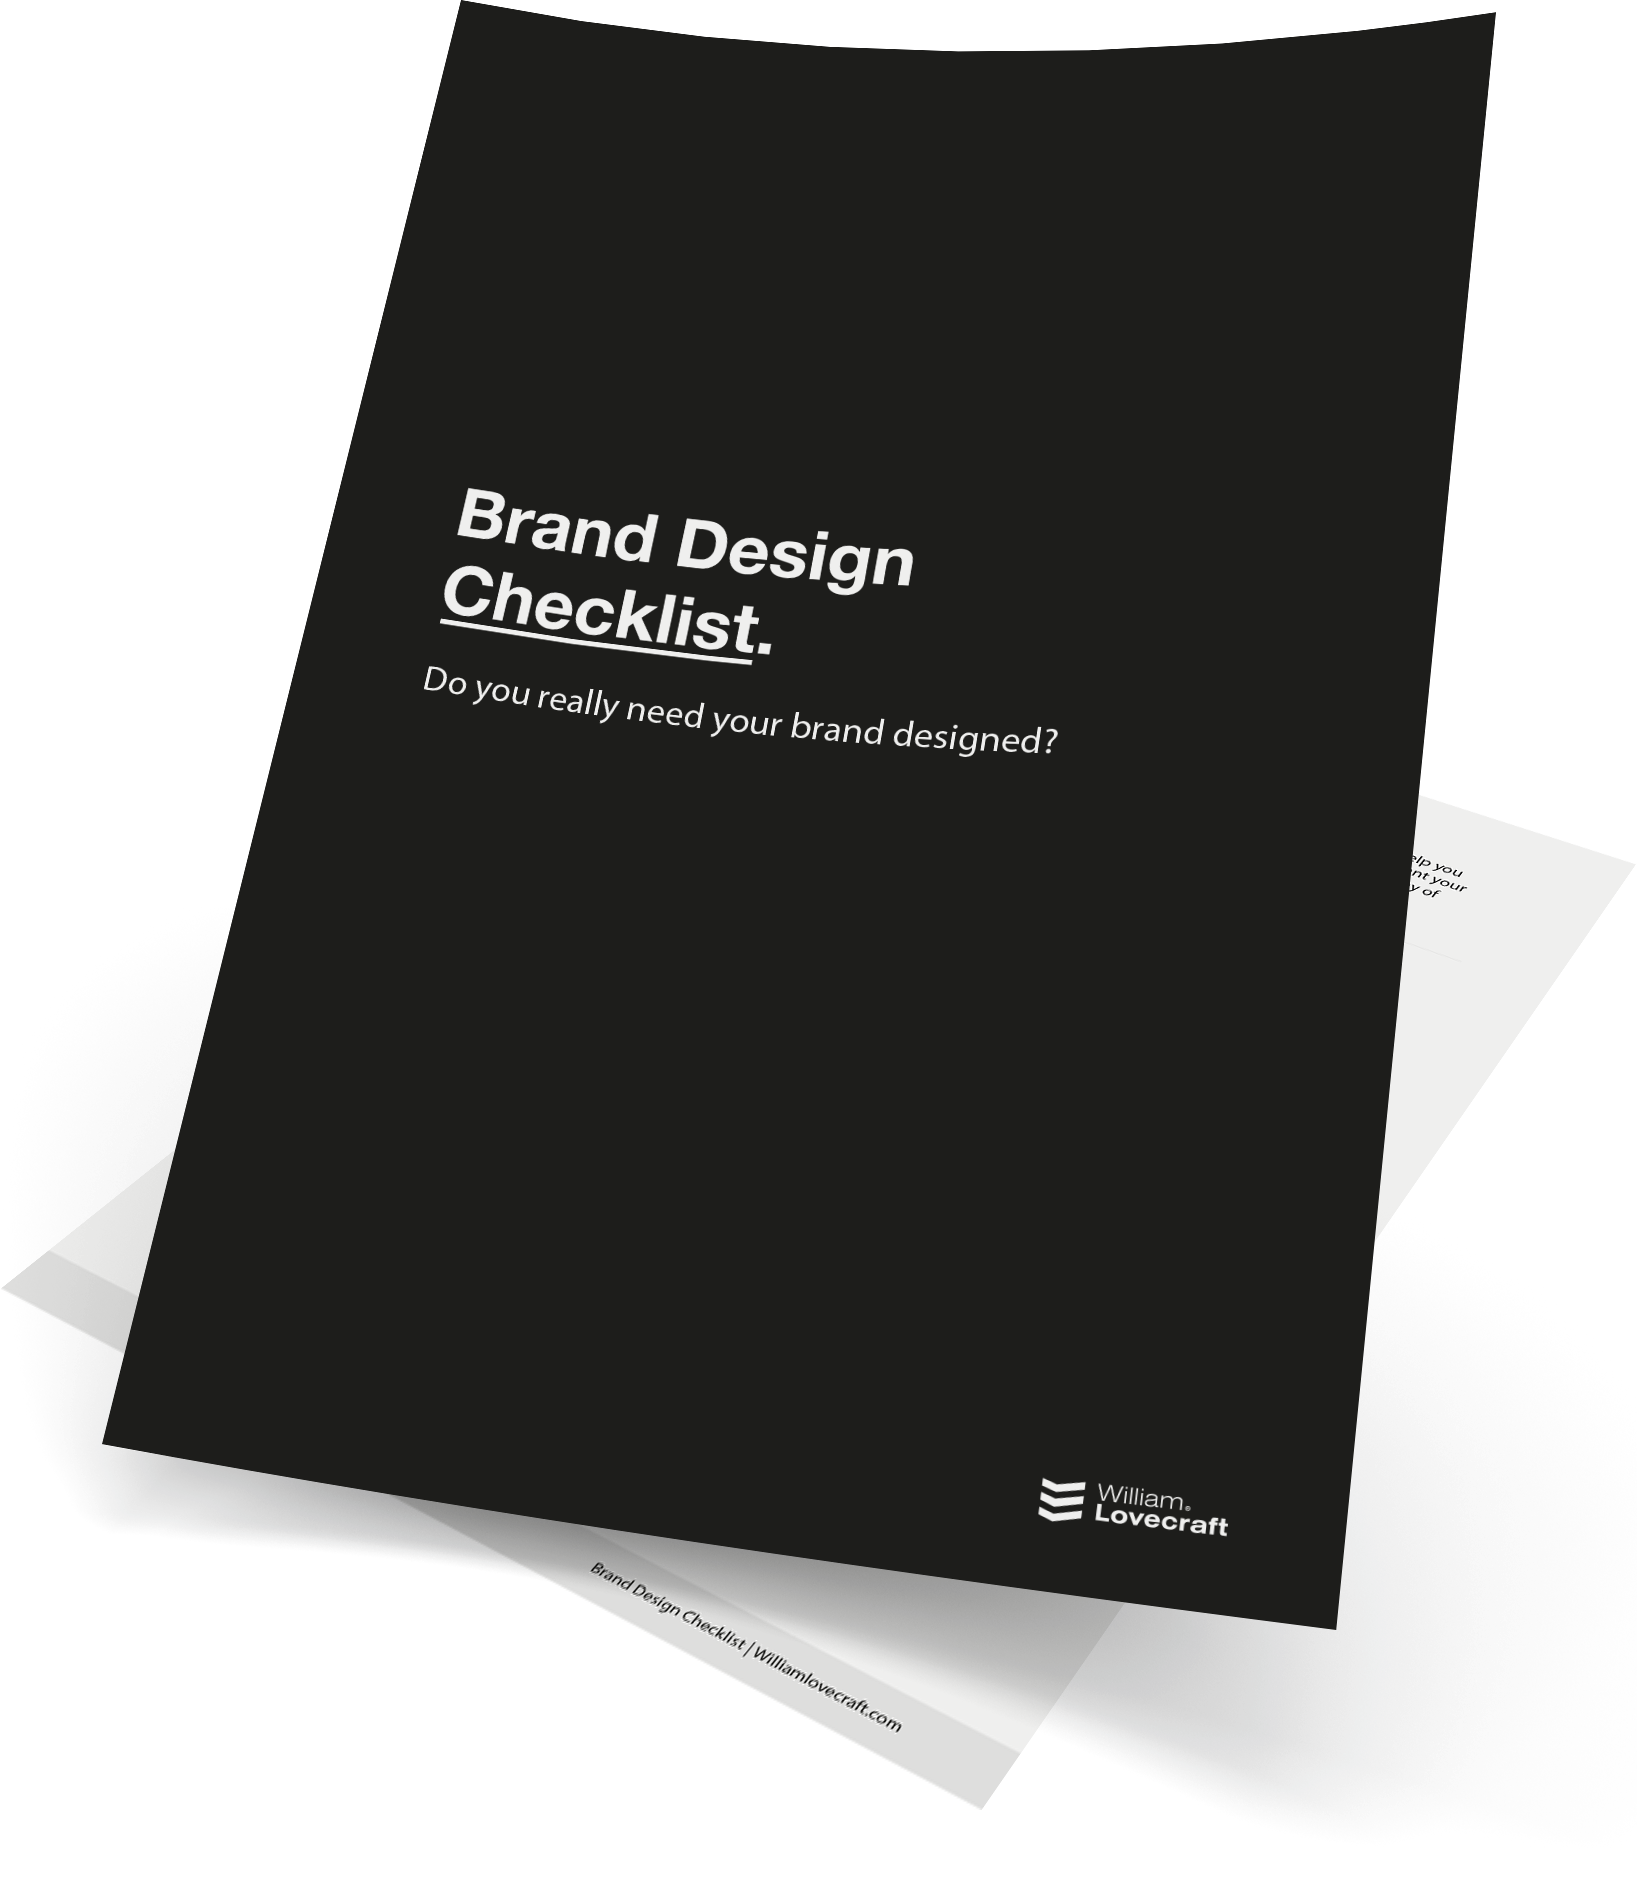 william lovecraft brand design branding checklist logo designer